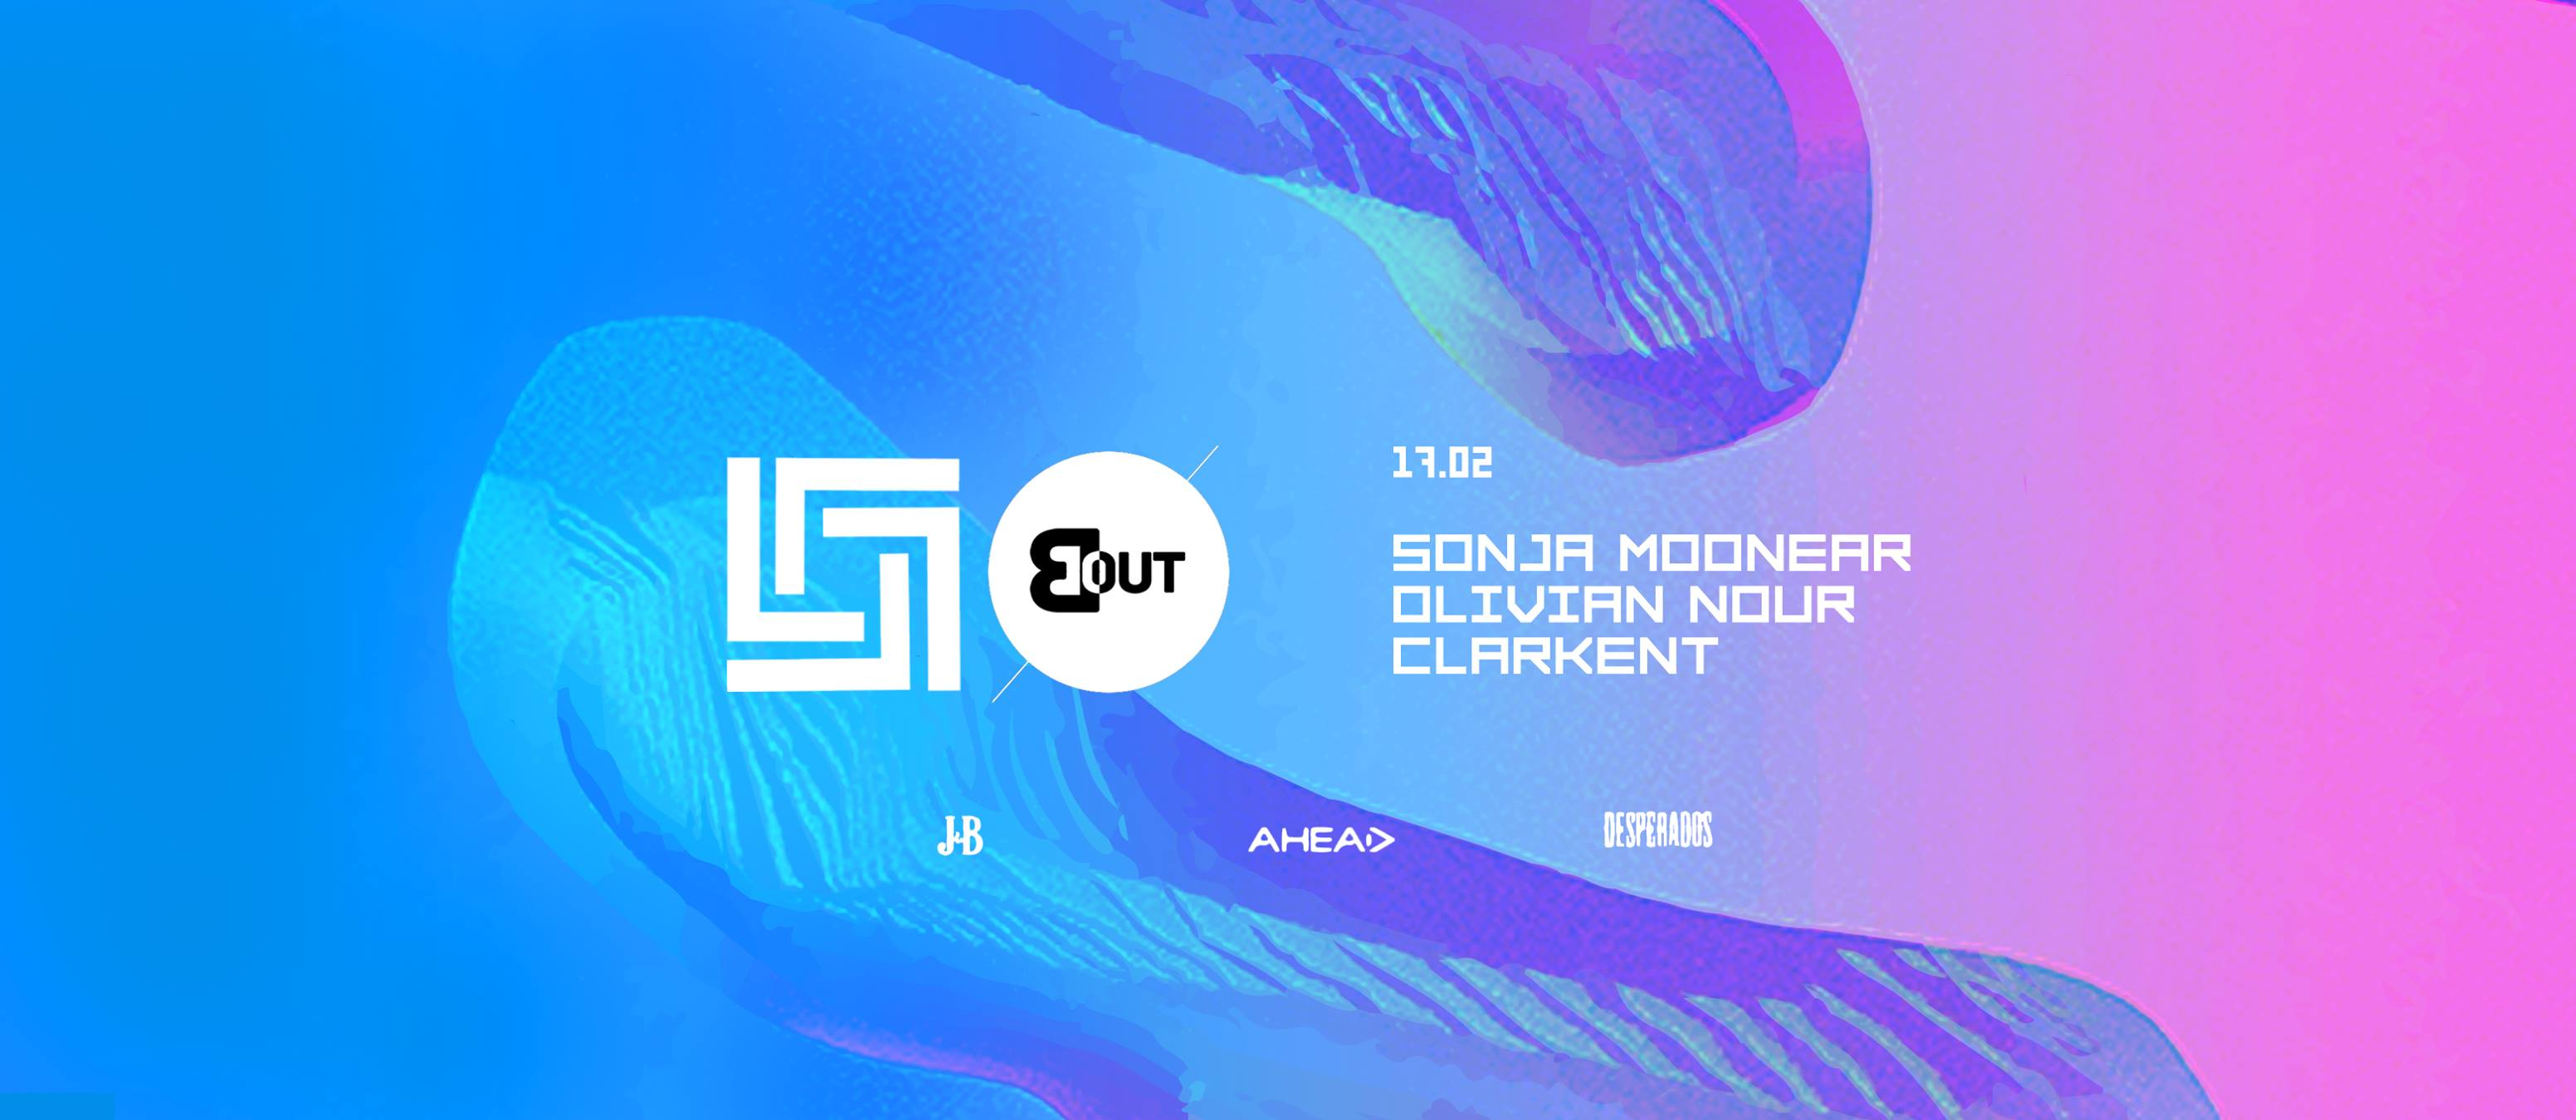 Sonja Moonear to play in database this Saturday